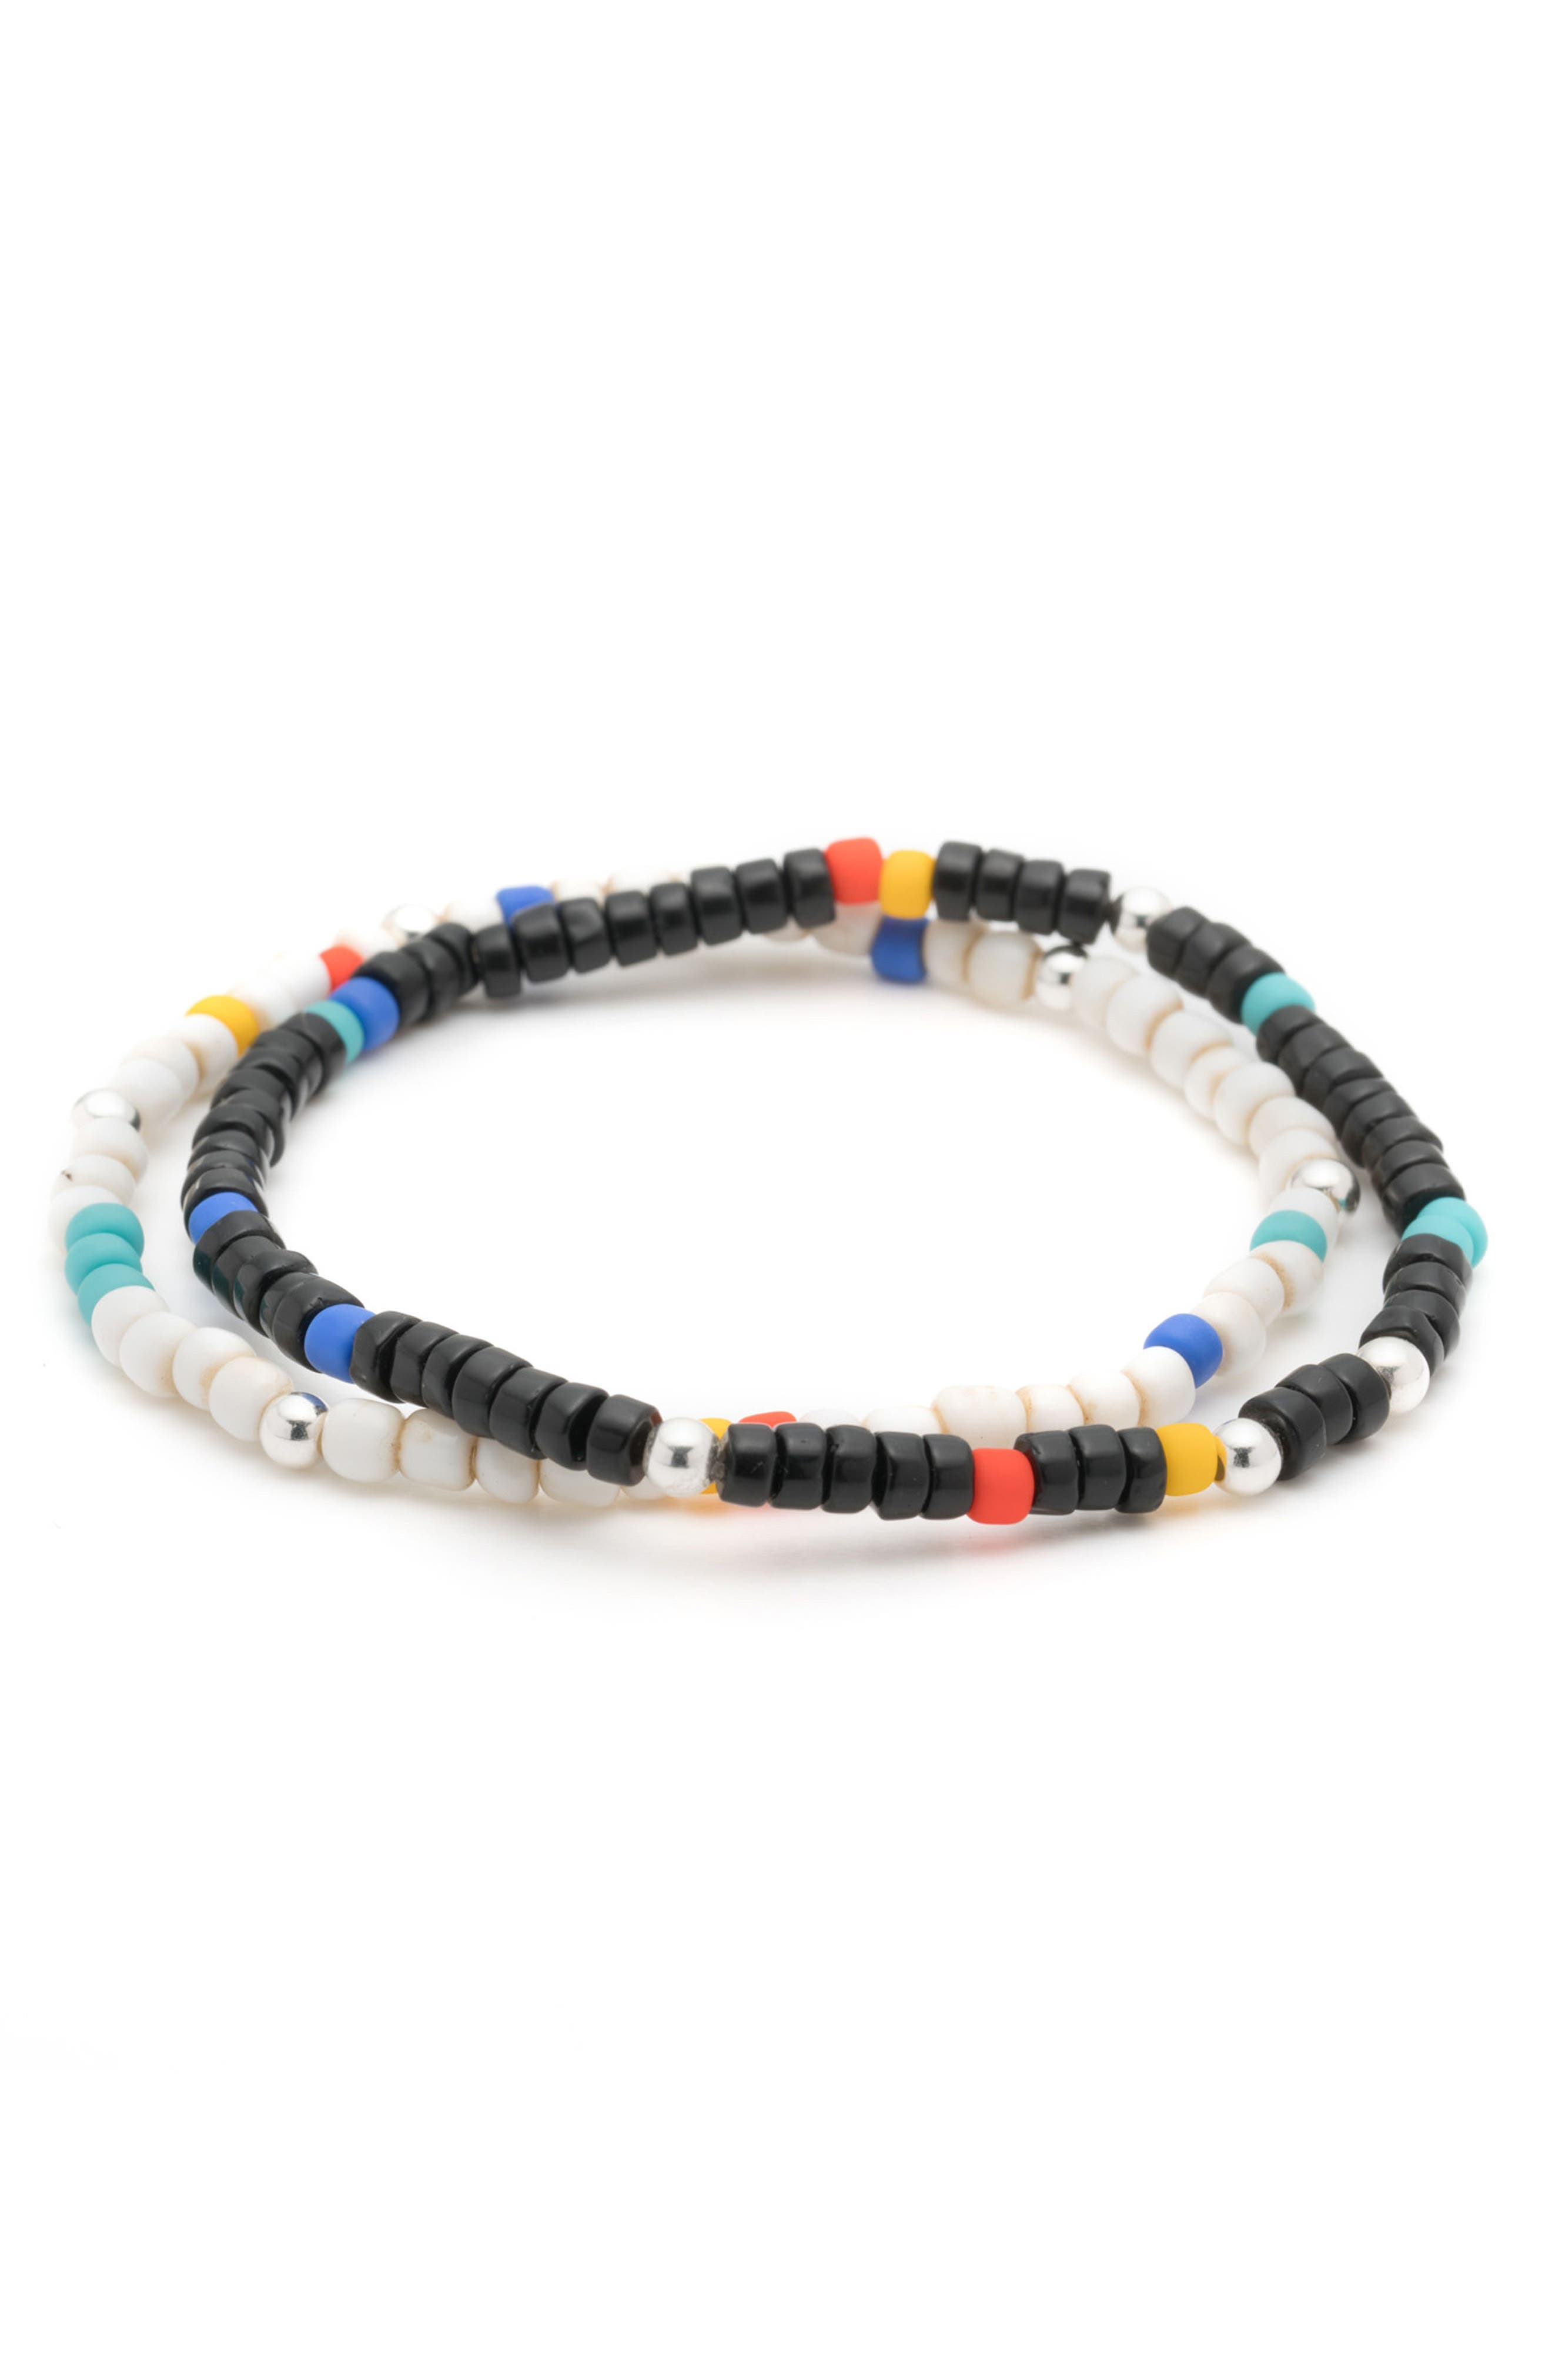 Essaouira 2-Pack Bracelets,                         Main,                         color, Black/ White/ Multi